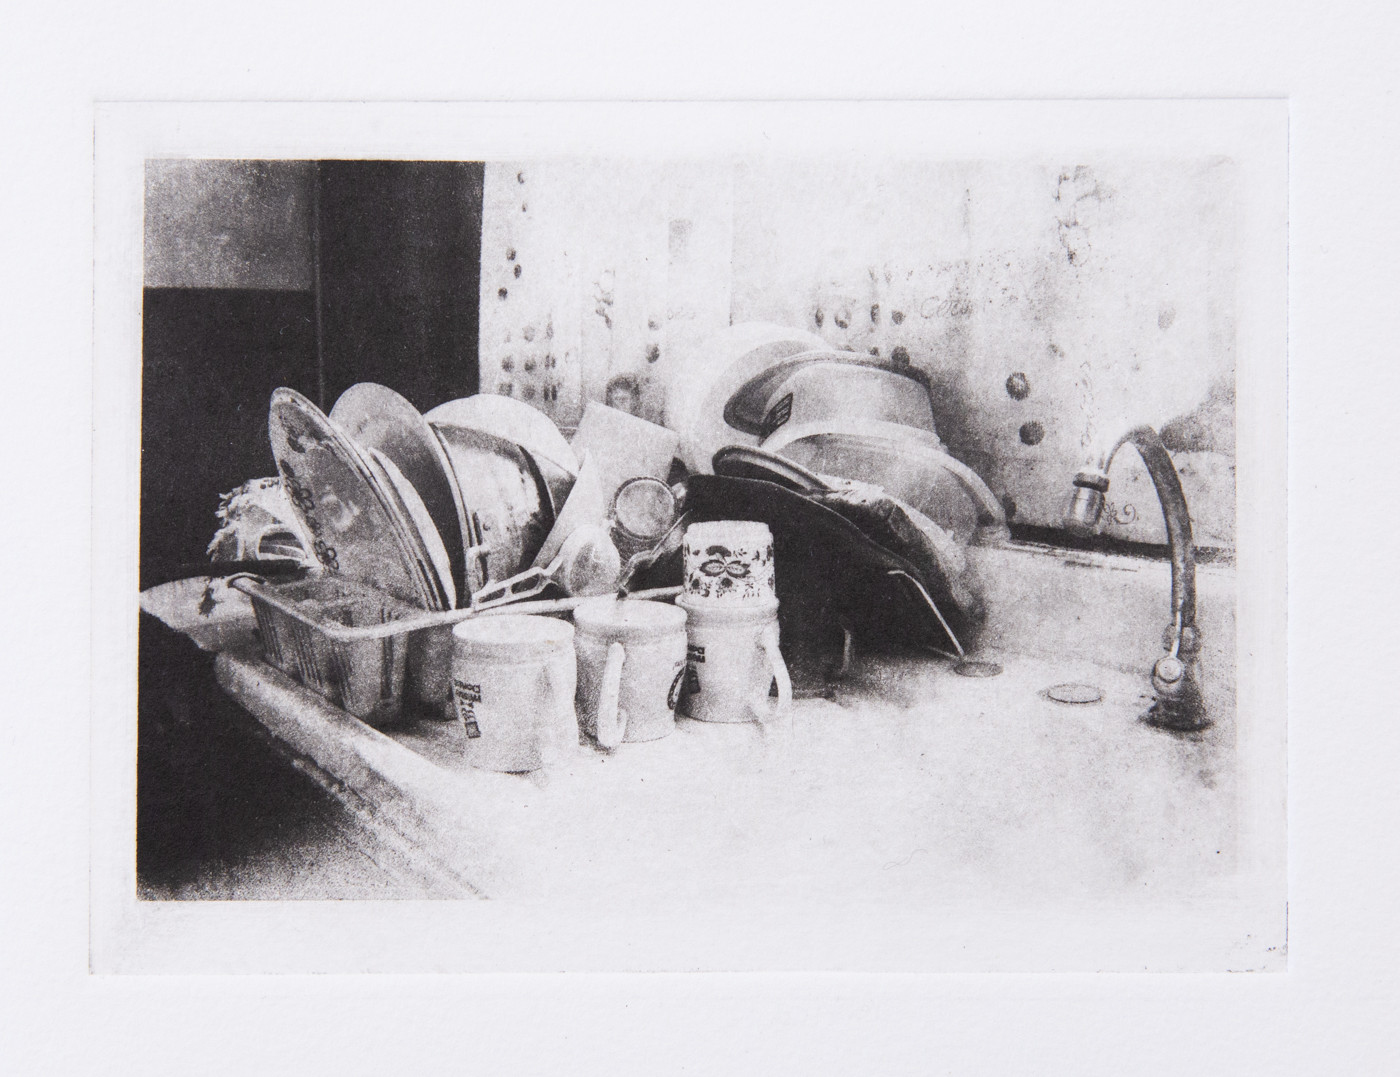 """5""""x7"""" Photogravure on Hahnemuhle Copperplate Paper"""